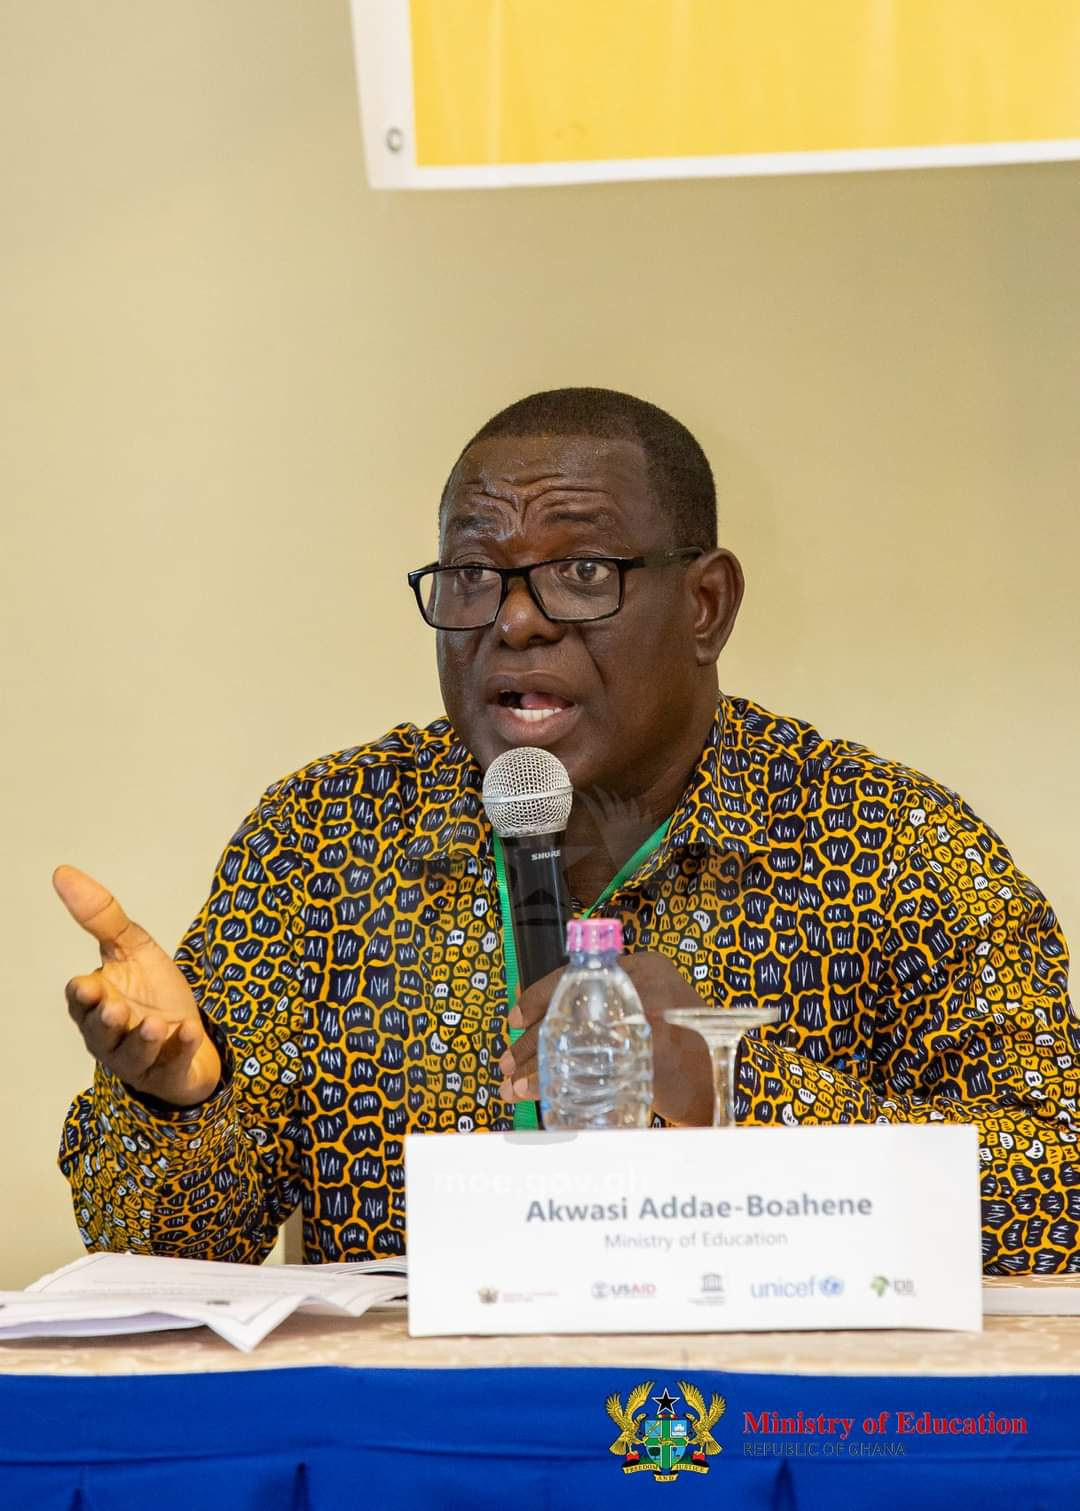 PERSONALITY PROFILE. CoEWJ Interview with Mr. Akwasi Addae-Boahene, Chief Technical Advisor, T-TEL and Policy Advisor, Education Reform Secretariat, Ministry of Education.